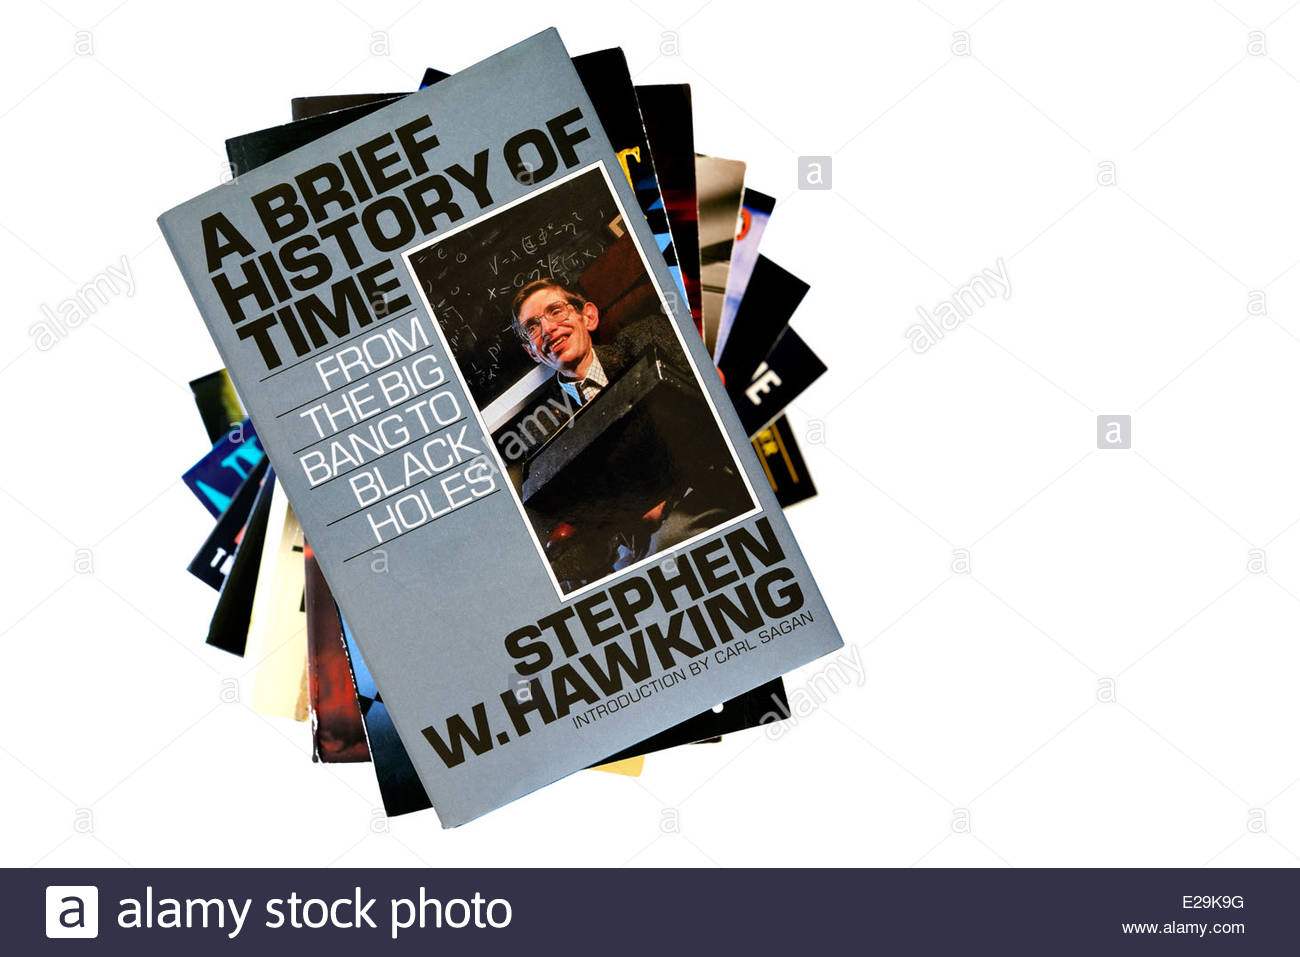 Stephen Hawking book title A Brief History Of Time, stacked used books, England - Stock Image